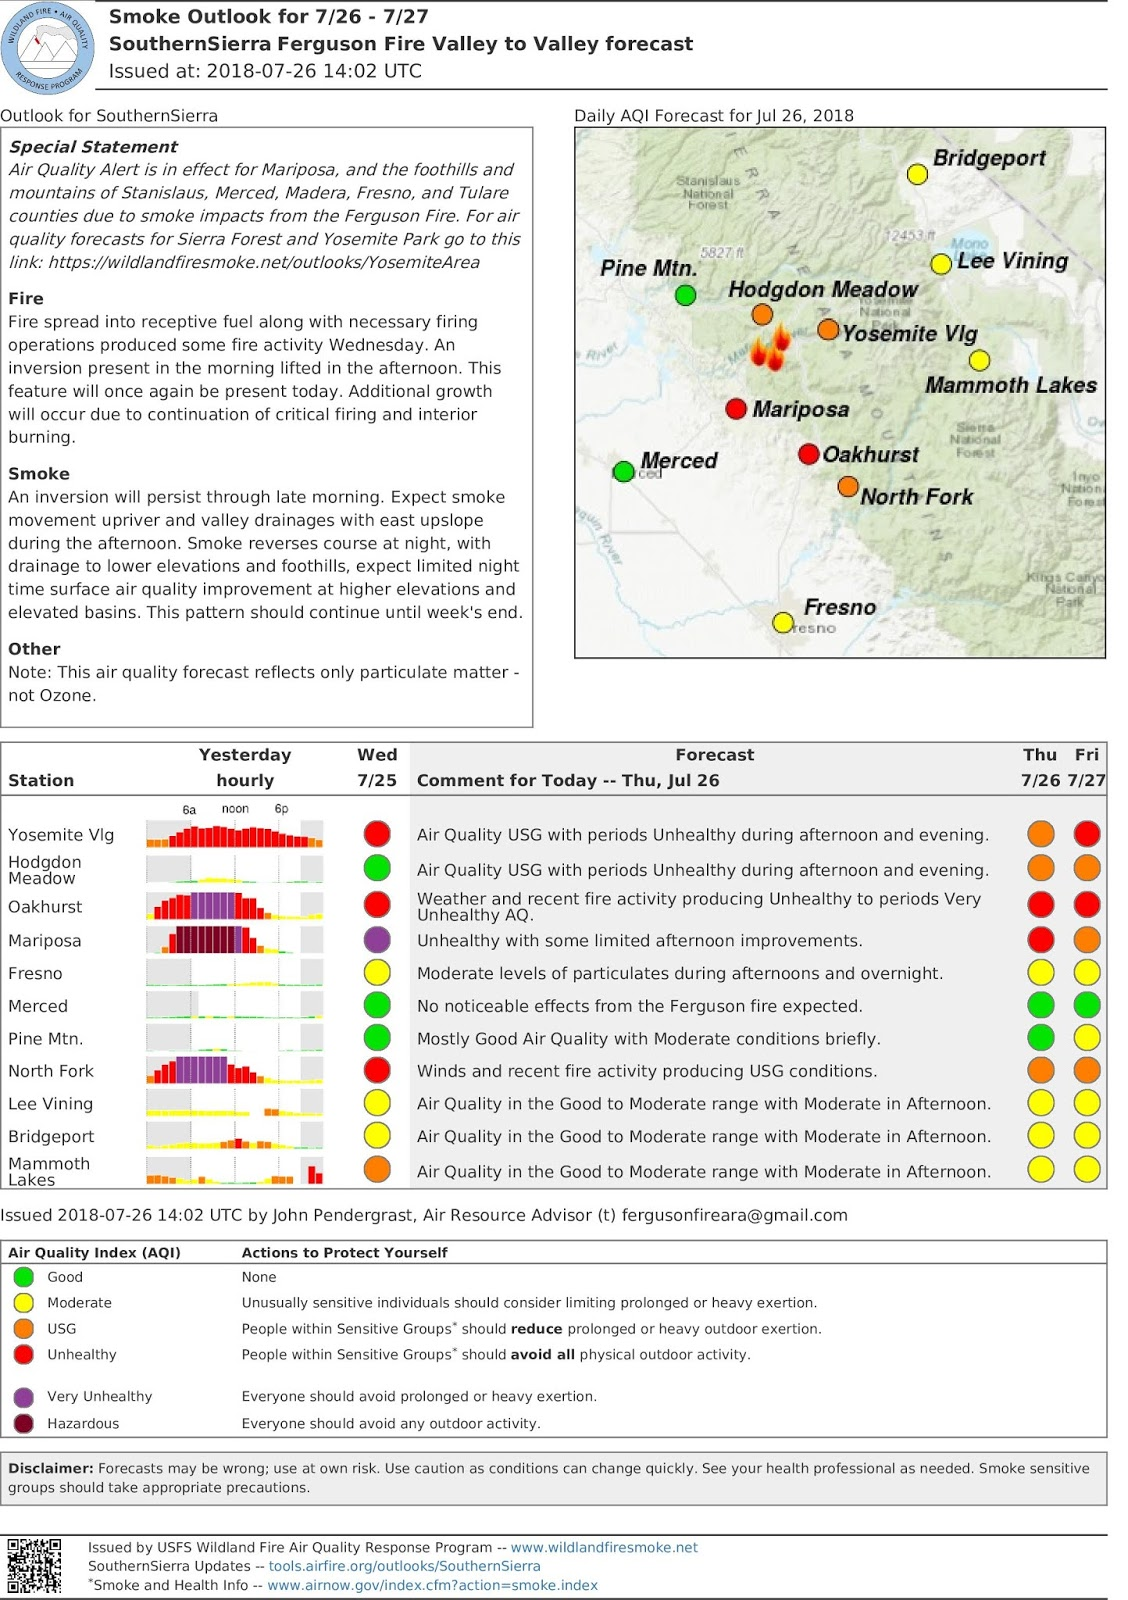 thursday july 26th valley to valley forecast for the ferguson fire